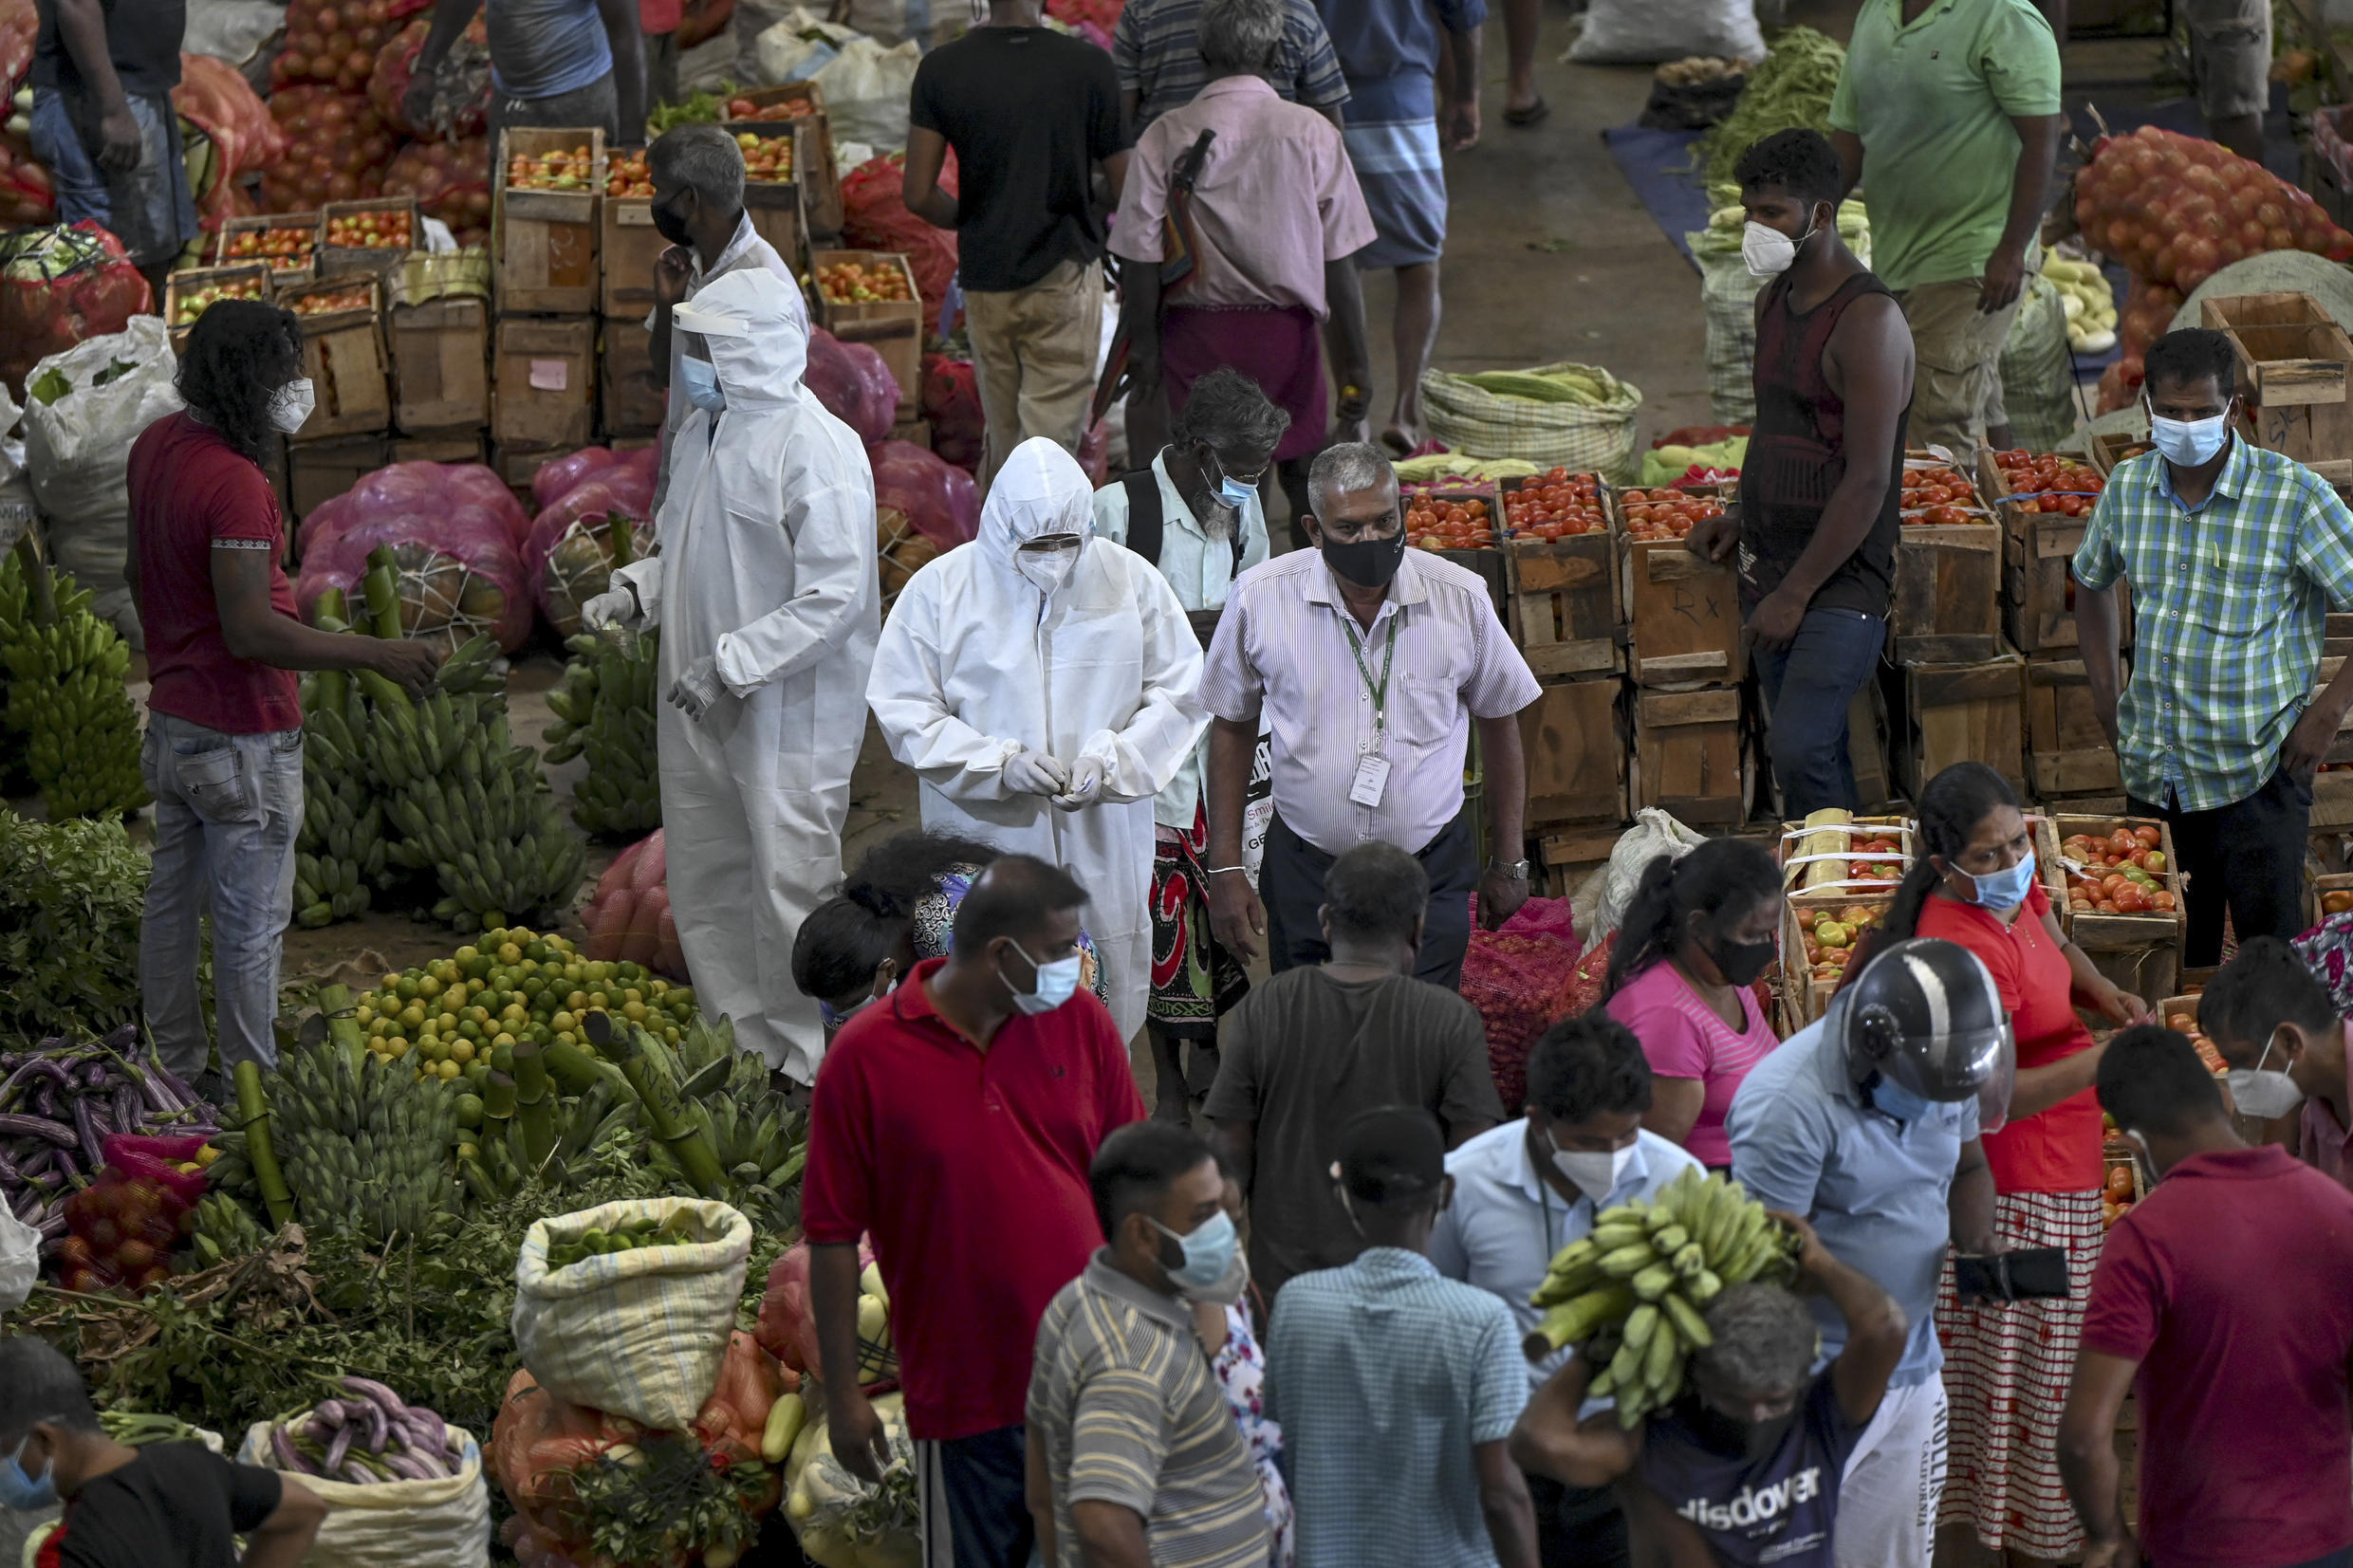 The FAO's food price index has now risen for 12 consecutive months to reach its highest value since September 2011, driven by the higher costs of vegetable oils, sugar and cereals.